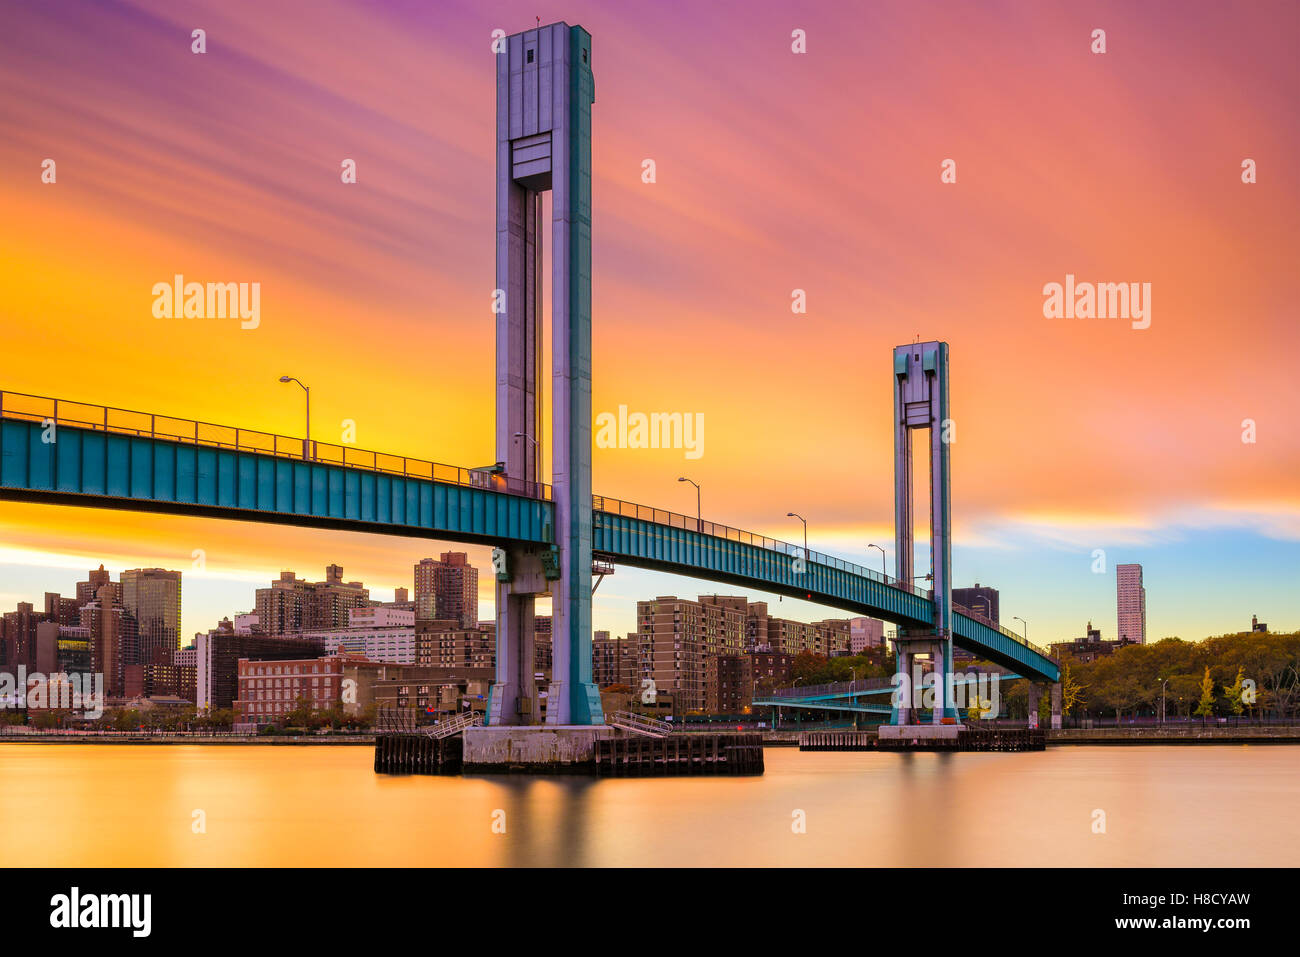 Wards Island Bridge crossing the Harlem River between Manhattan Island and Wards Island in New York City. - Stock Image